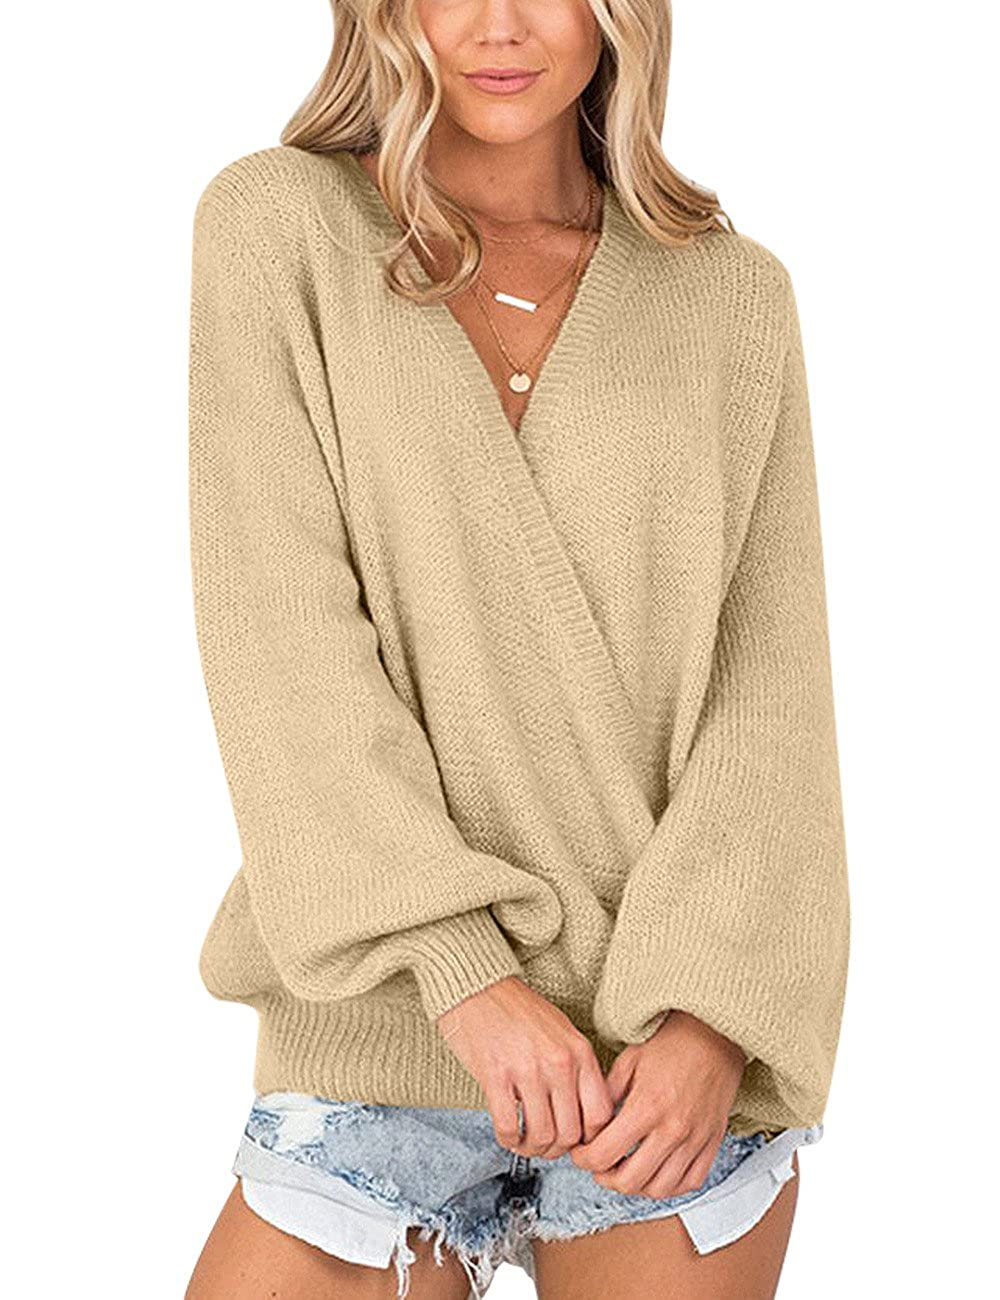 a233d1eb33 Lookbook Store Women s Knit Long Sleeve Faux Wrap Surplice V Neck Sweater  Top at Amazon Women s Clothing store